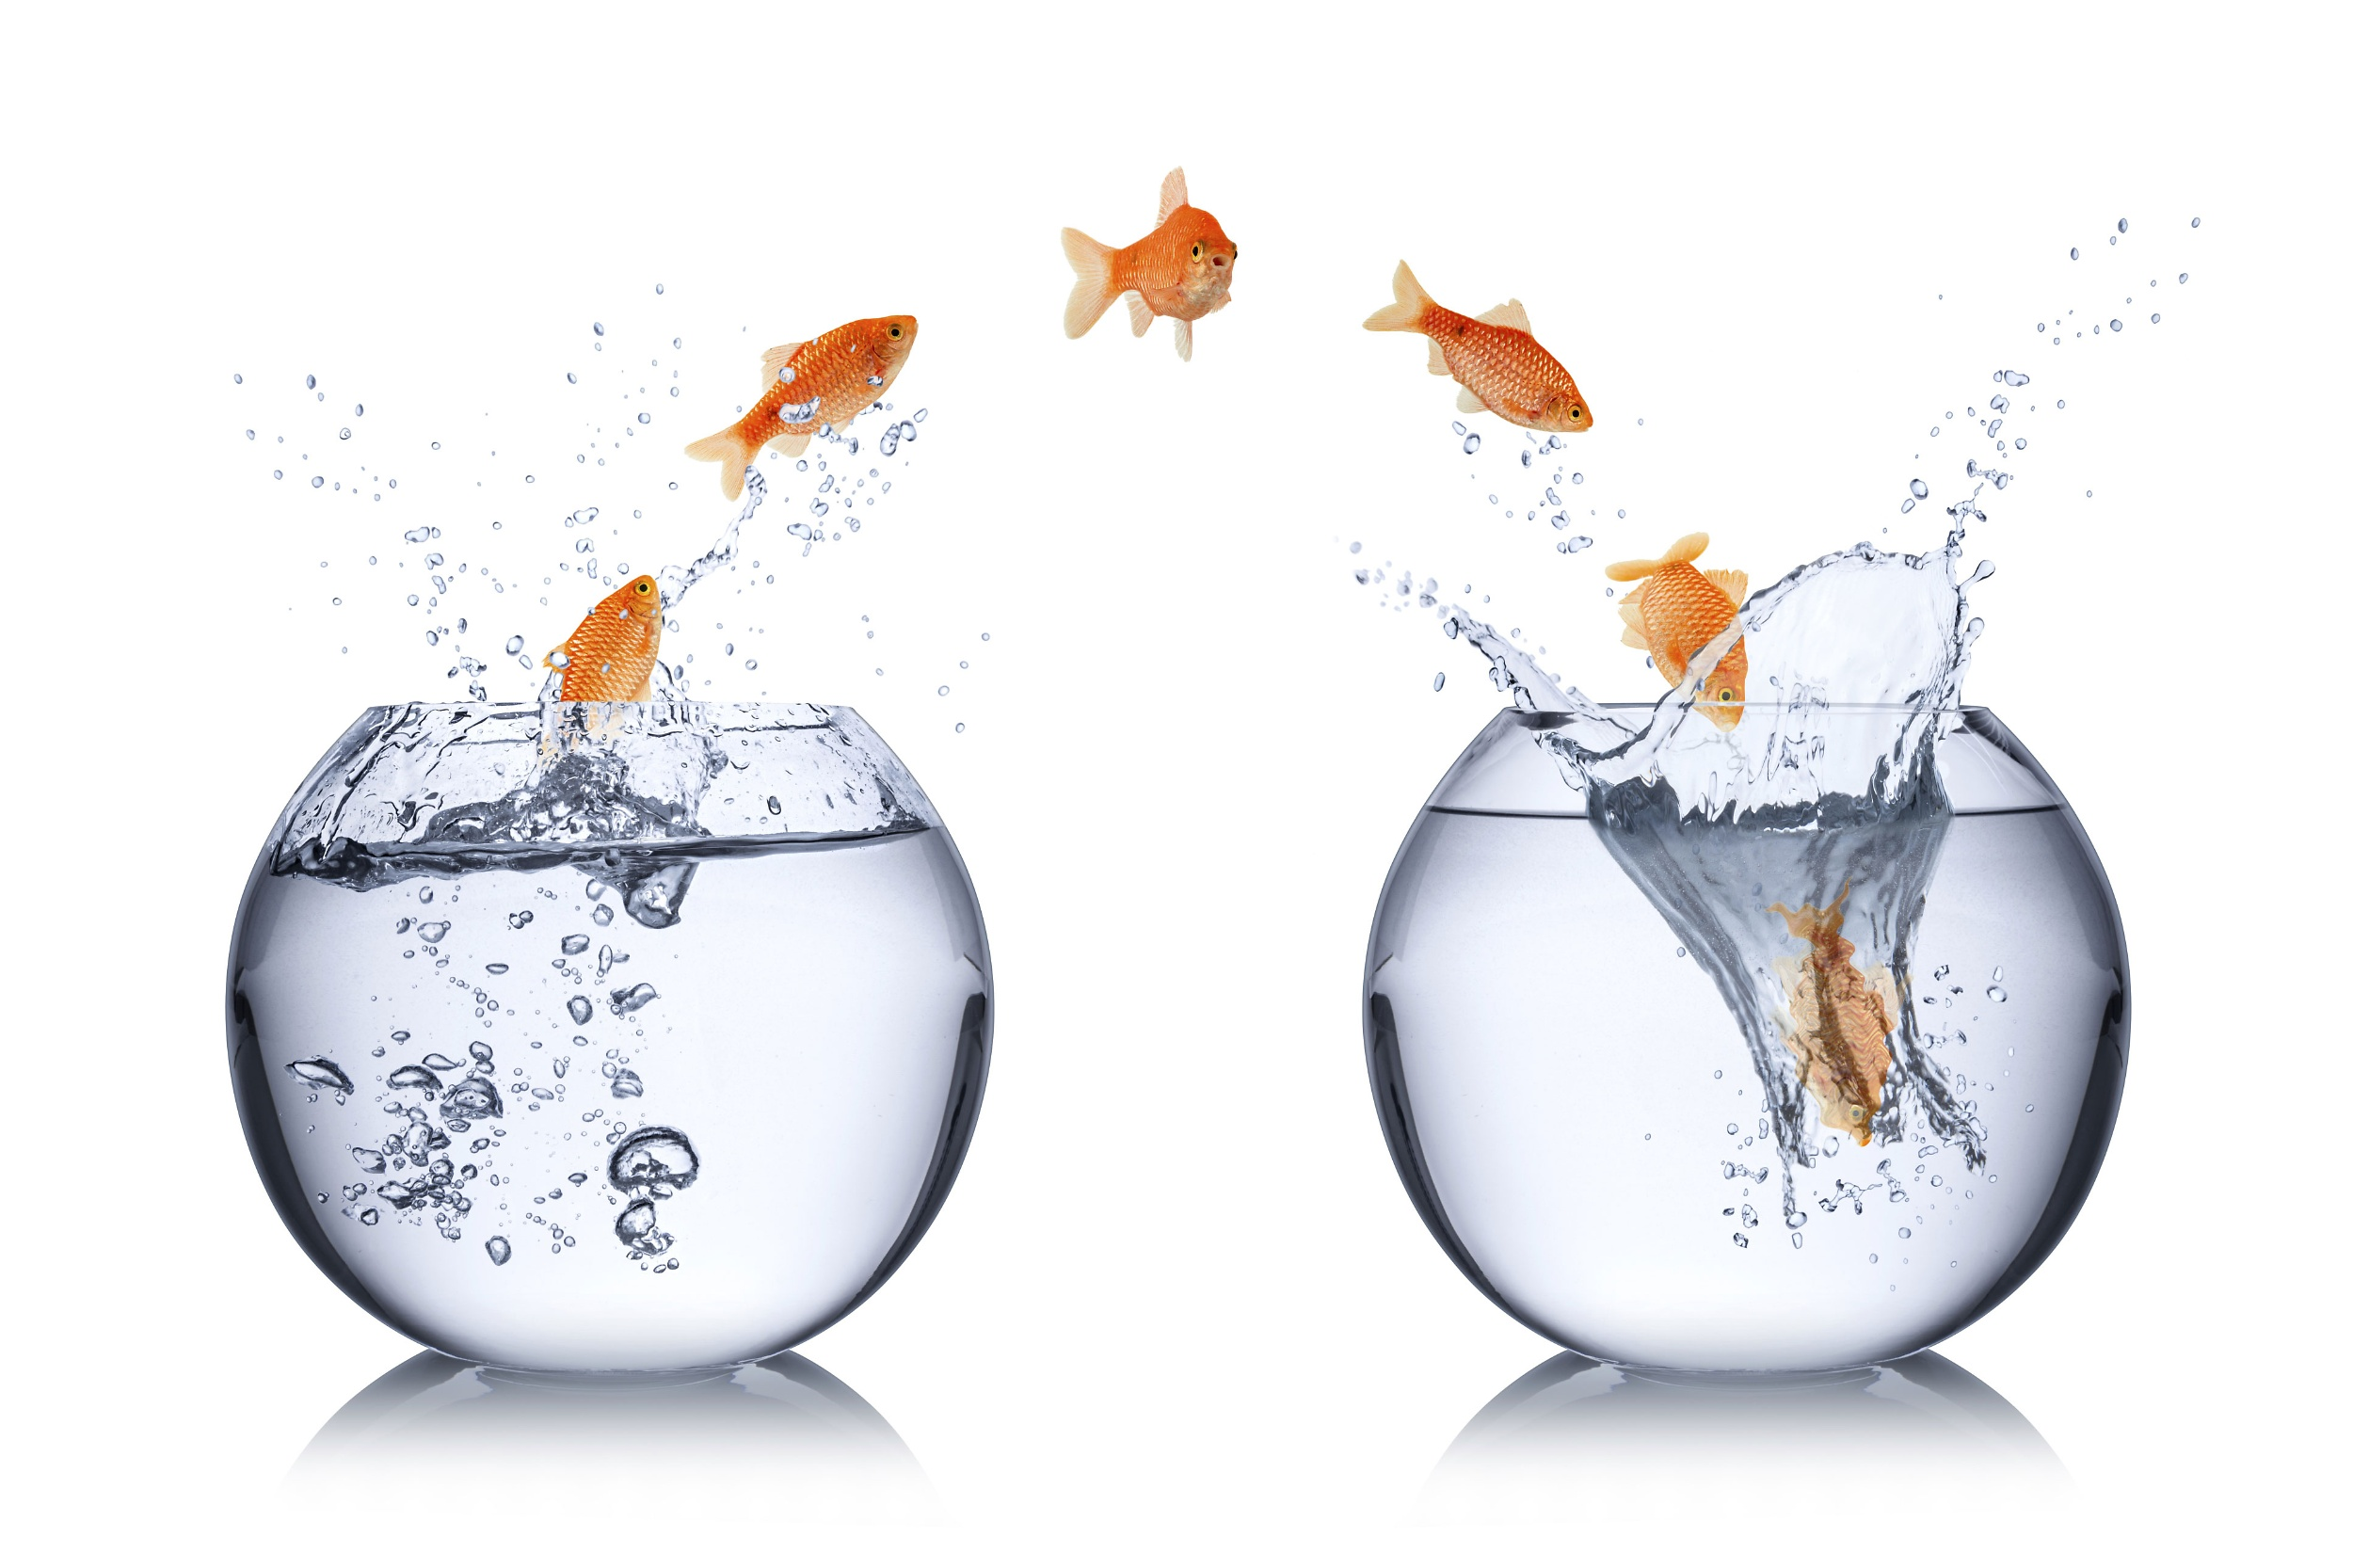 Transformaction involves leaping into a new fishbowl